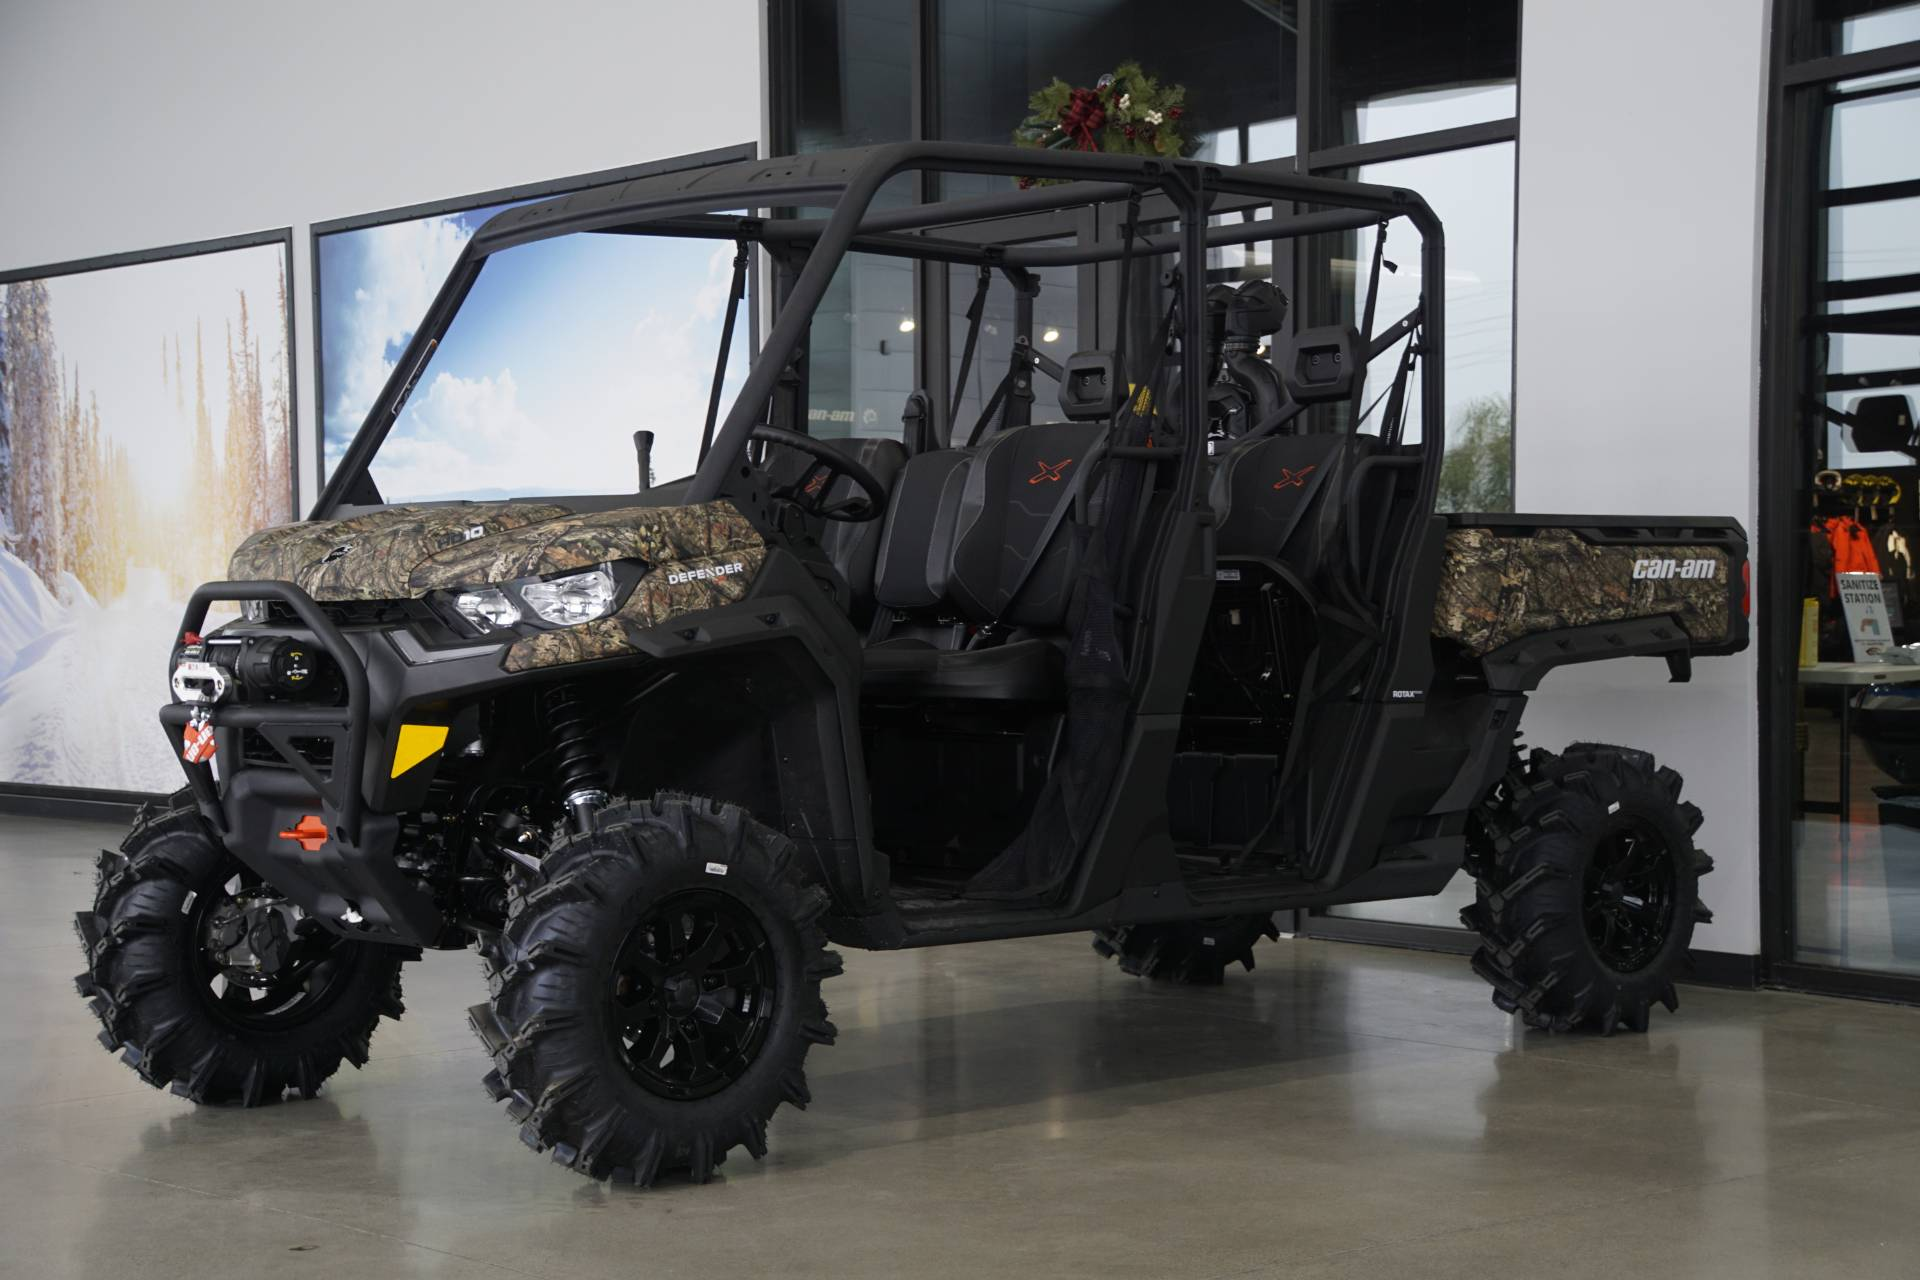 New 2021 Can-Am Defender MAX X MR HD10 Utility Vehicles in ...